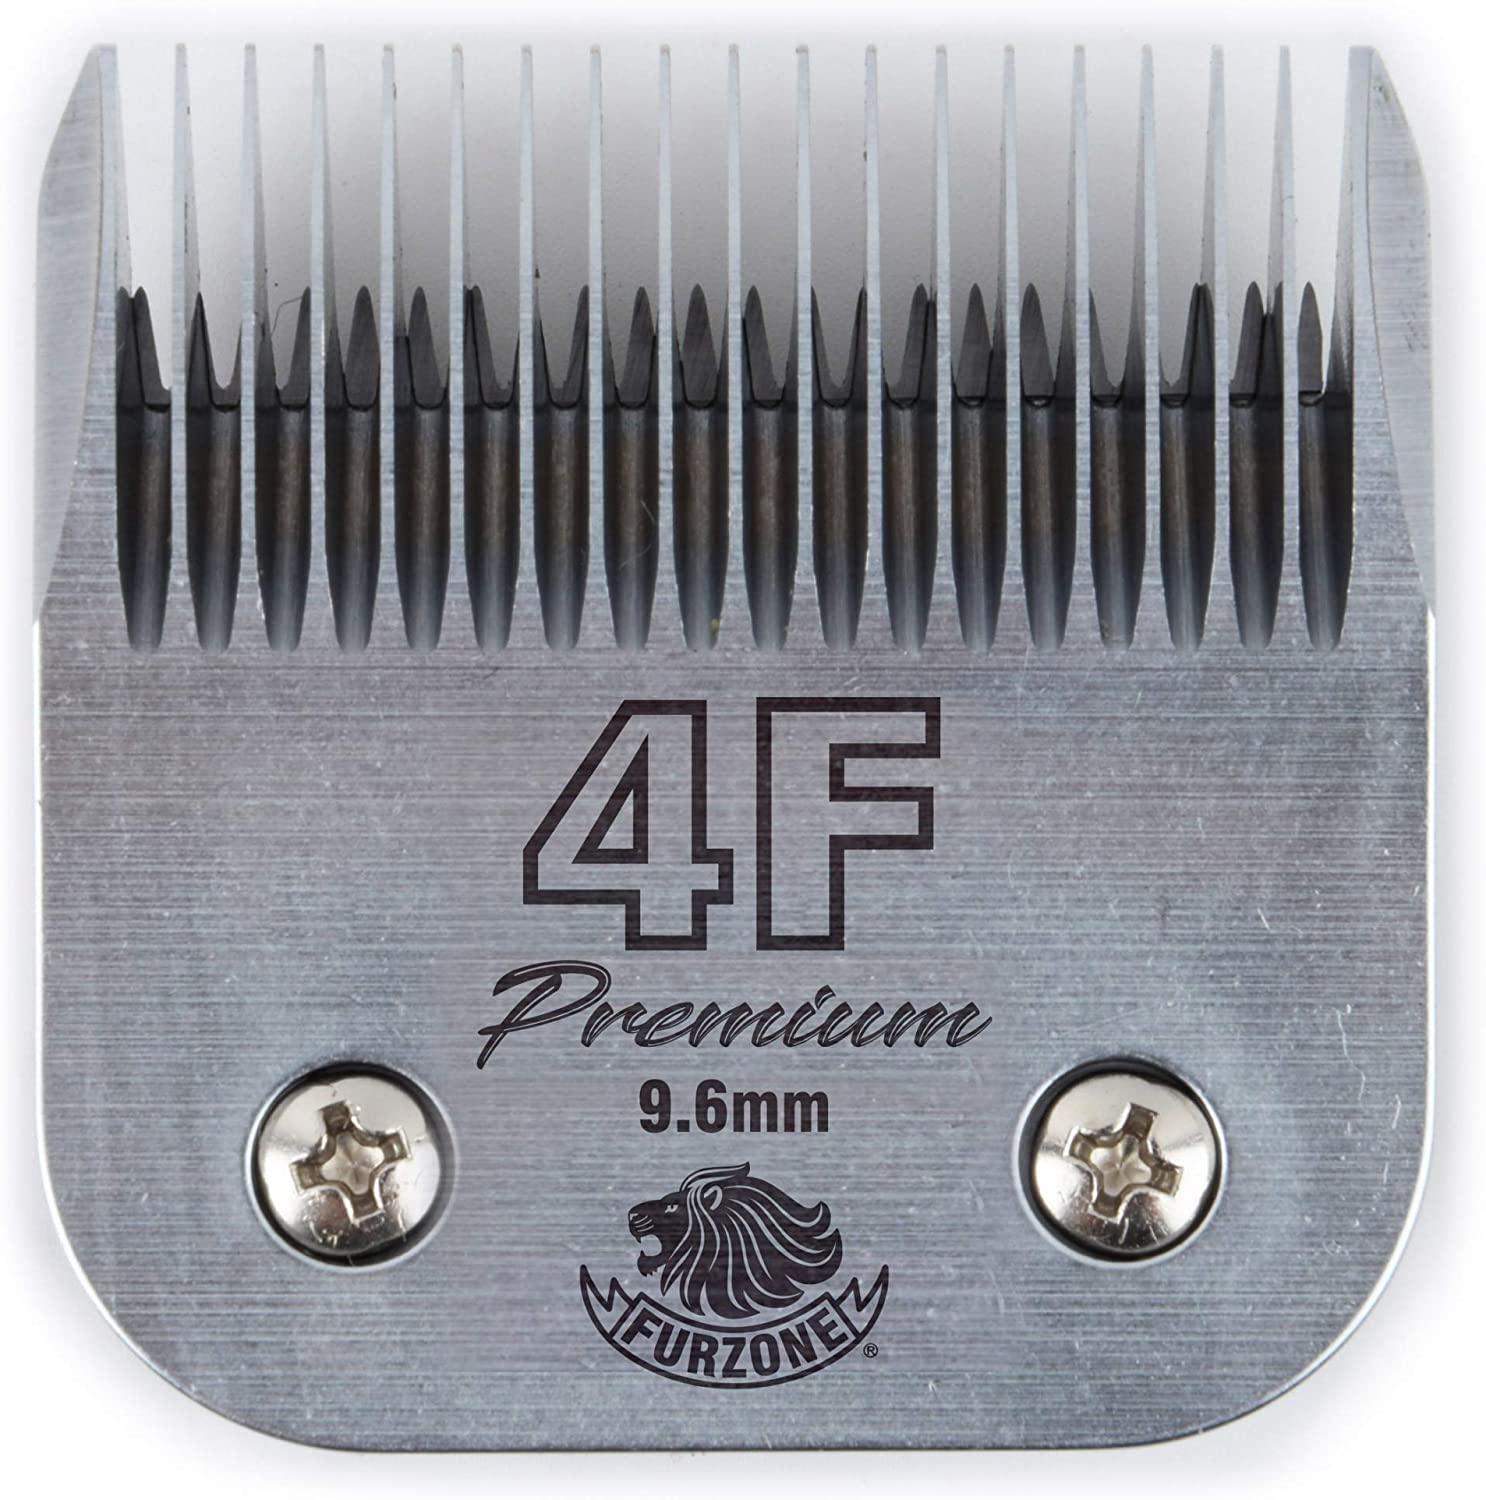 Furzone Professional A5 Detachable Blade - Made of Extra Durable Japanese Steel, Fits Most Andis, Oster, Wahl A5 Clippers, Size 4F 3/8""